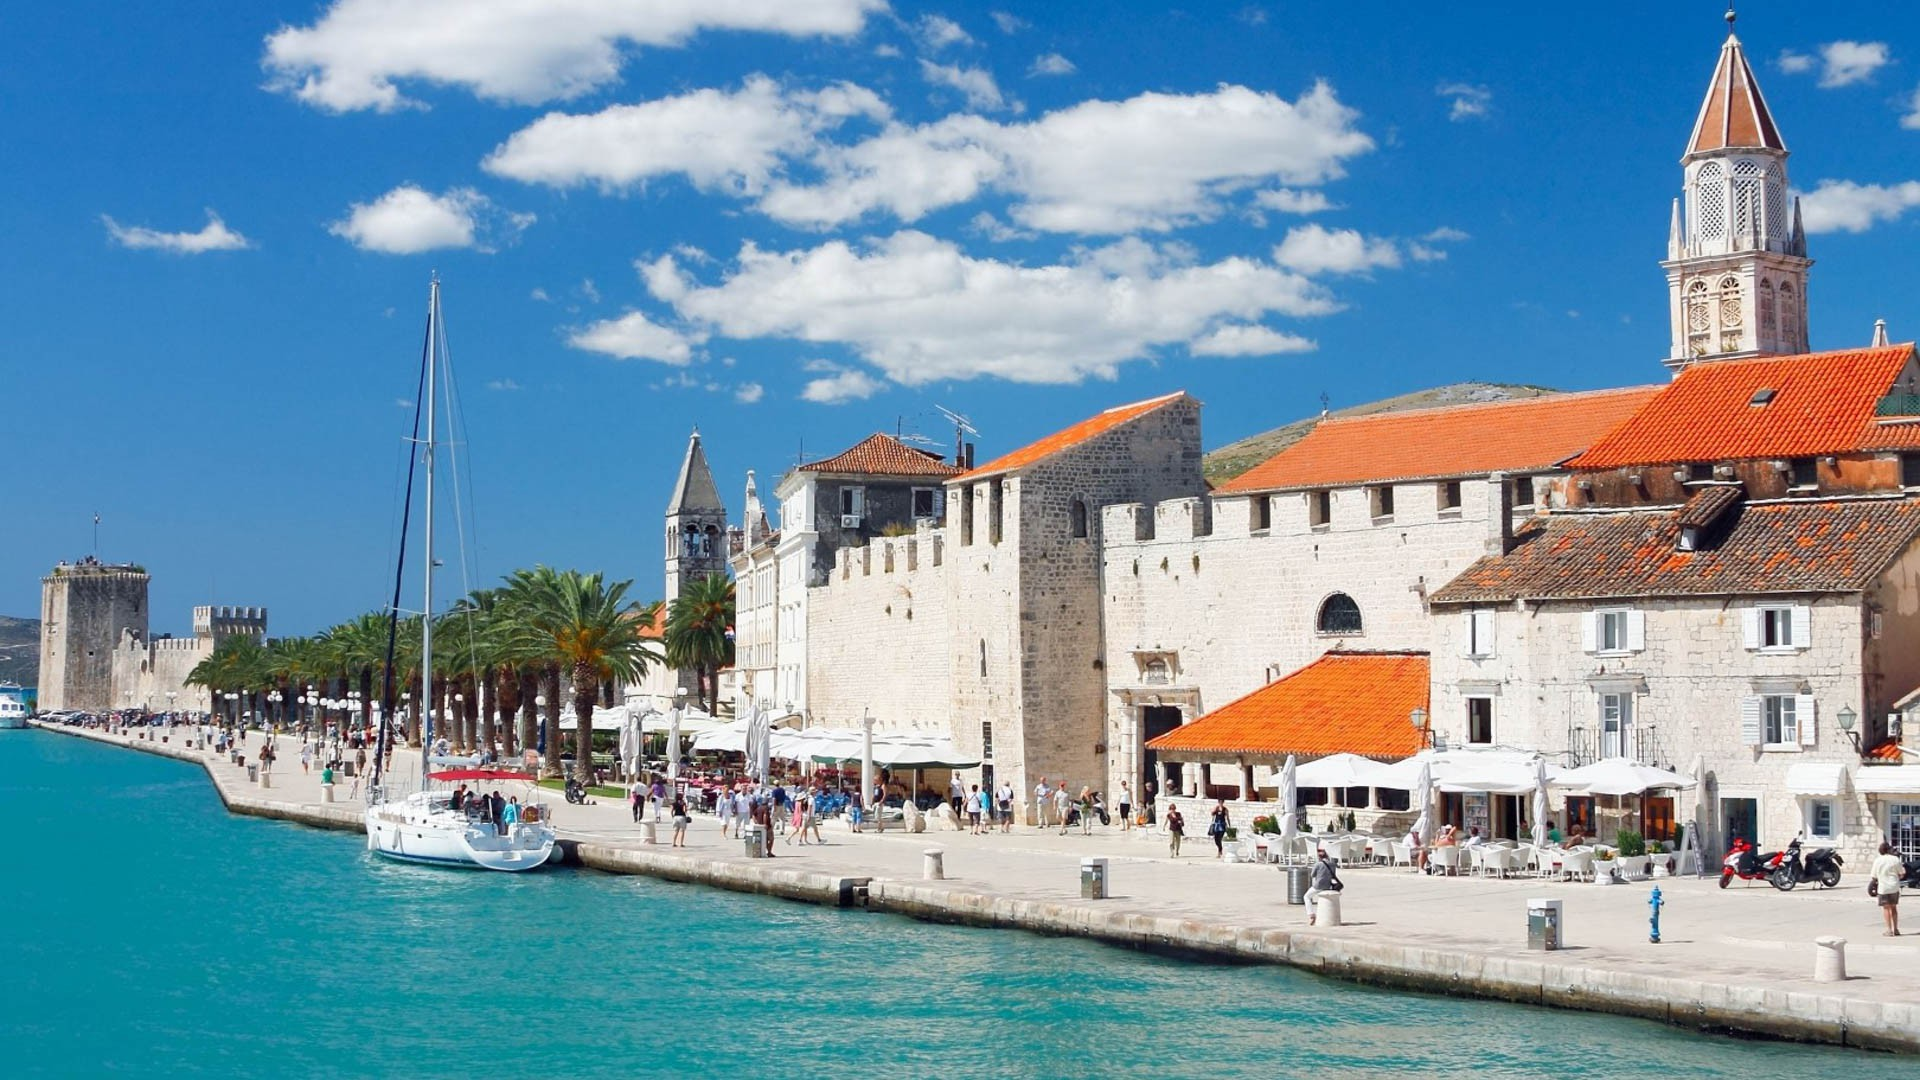 Trogir - Adriatic Sea | Croatia Cruise Croatia Cruise